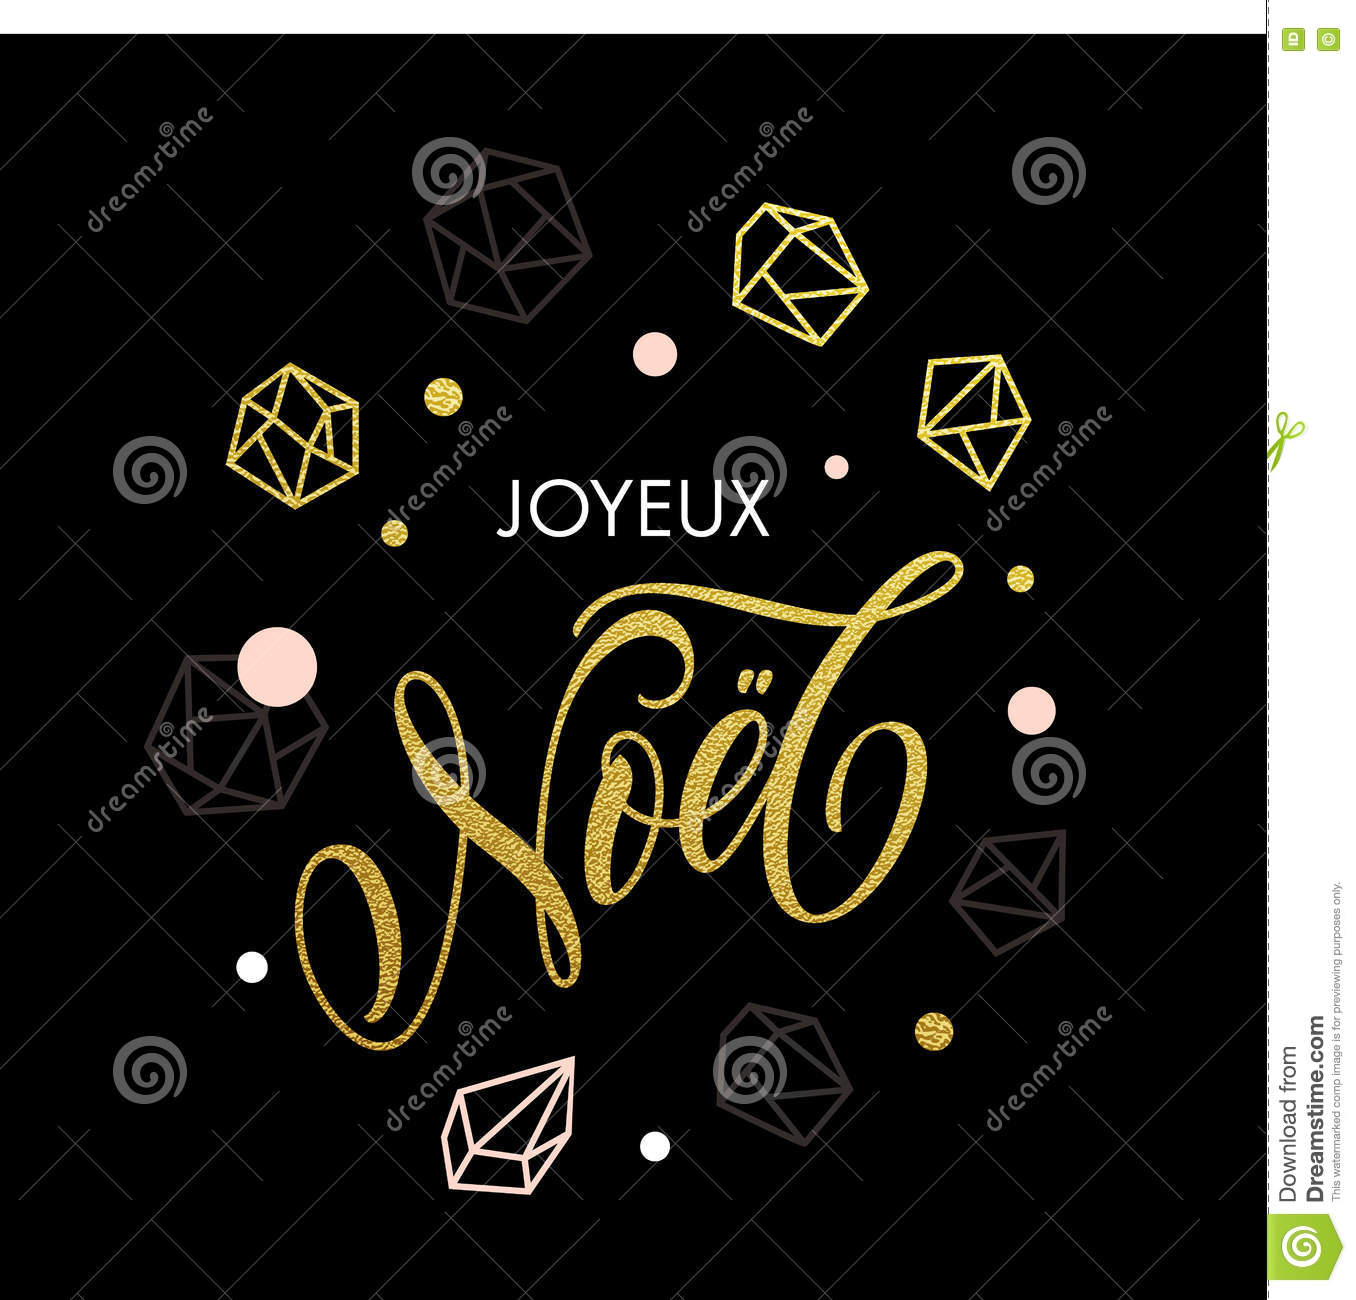 download merry christmas french joyeux noel gold glitter ornaments stock illustration illustration of merry - Merry Christmas French